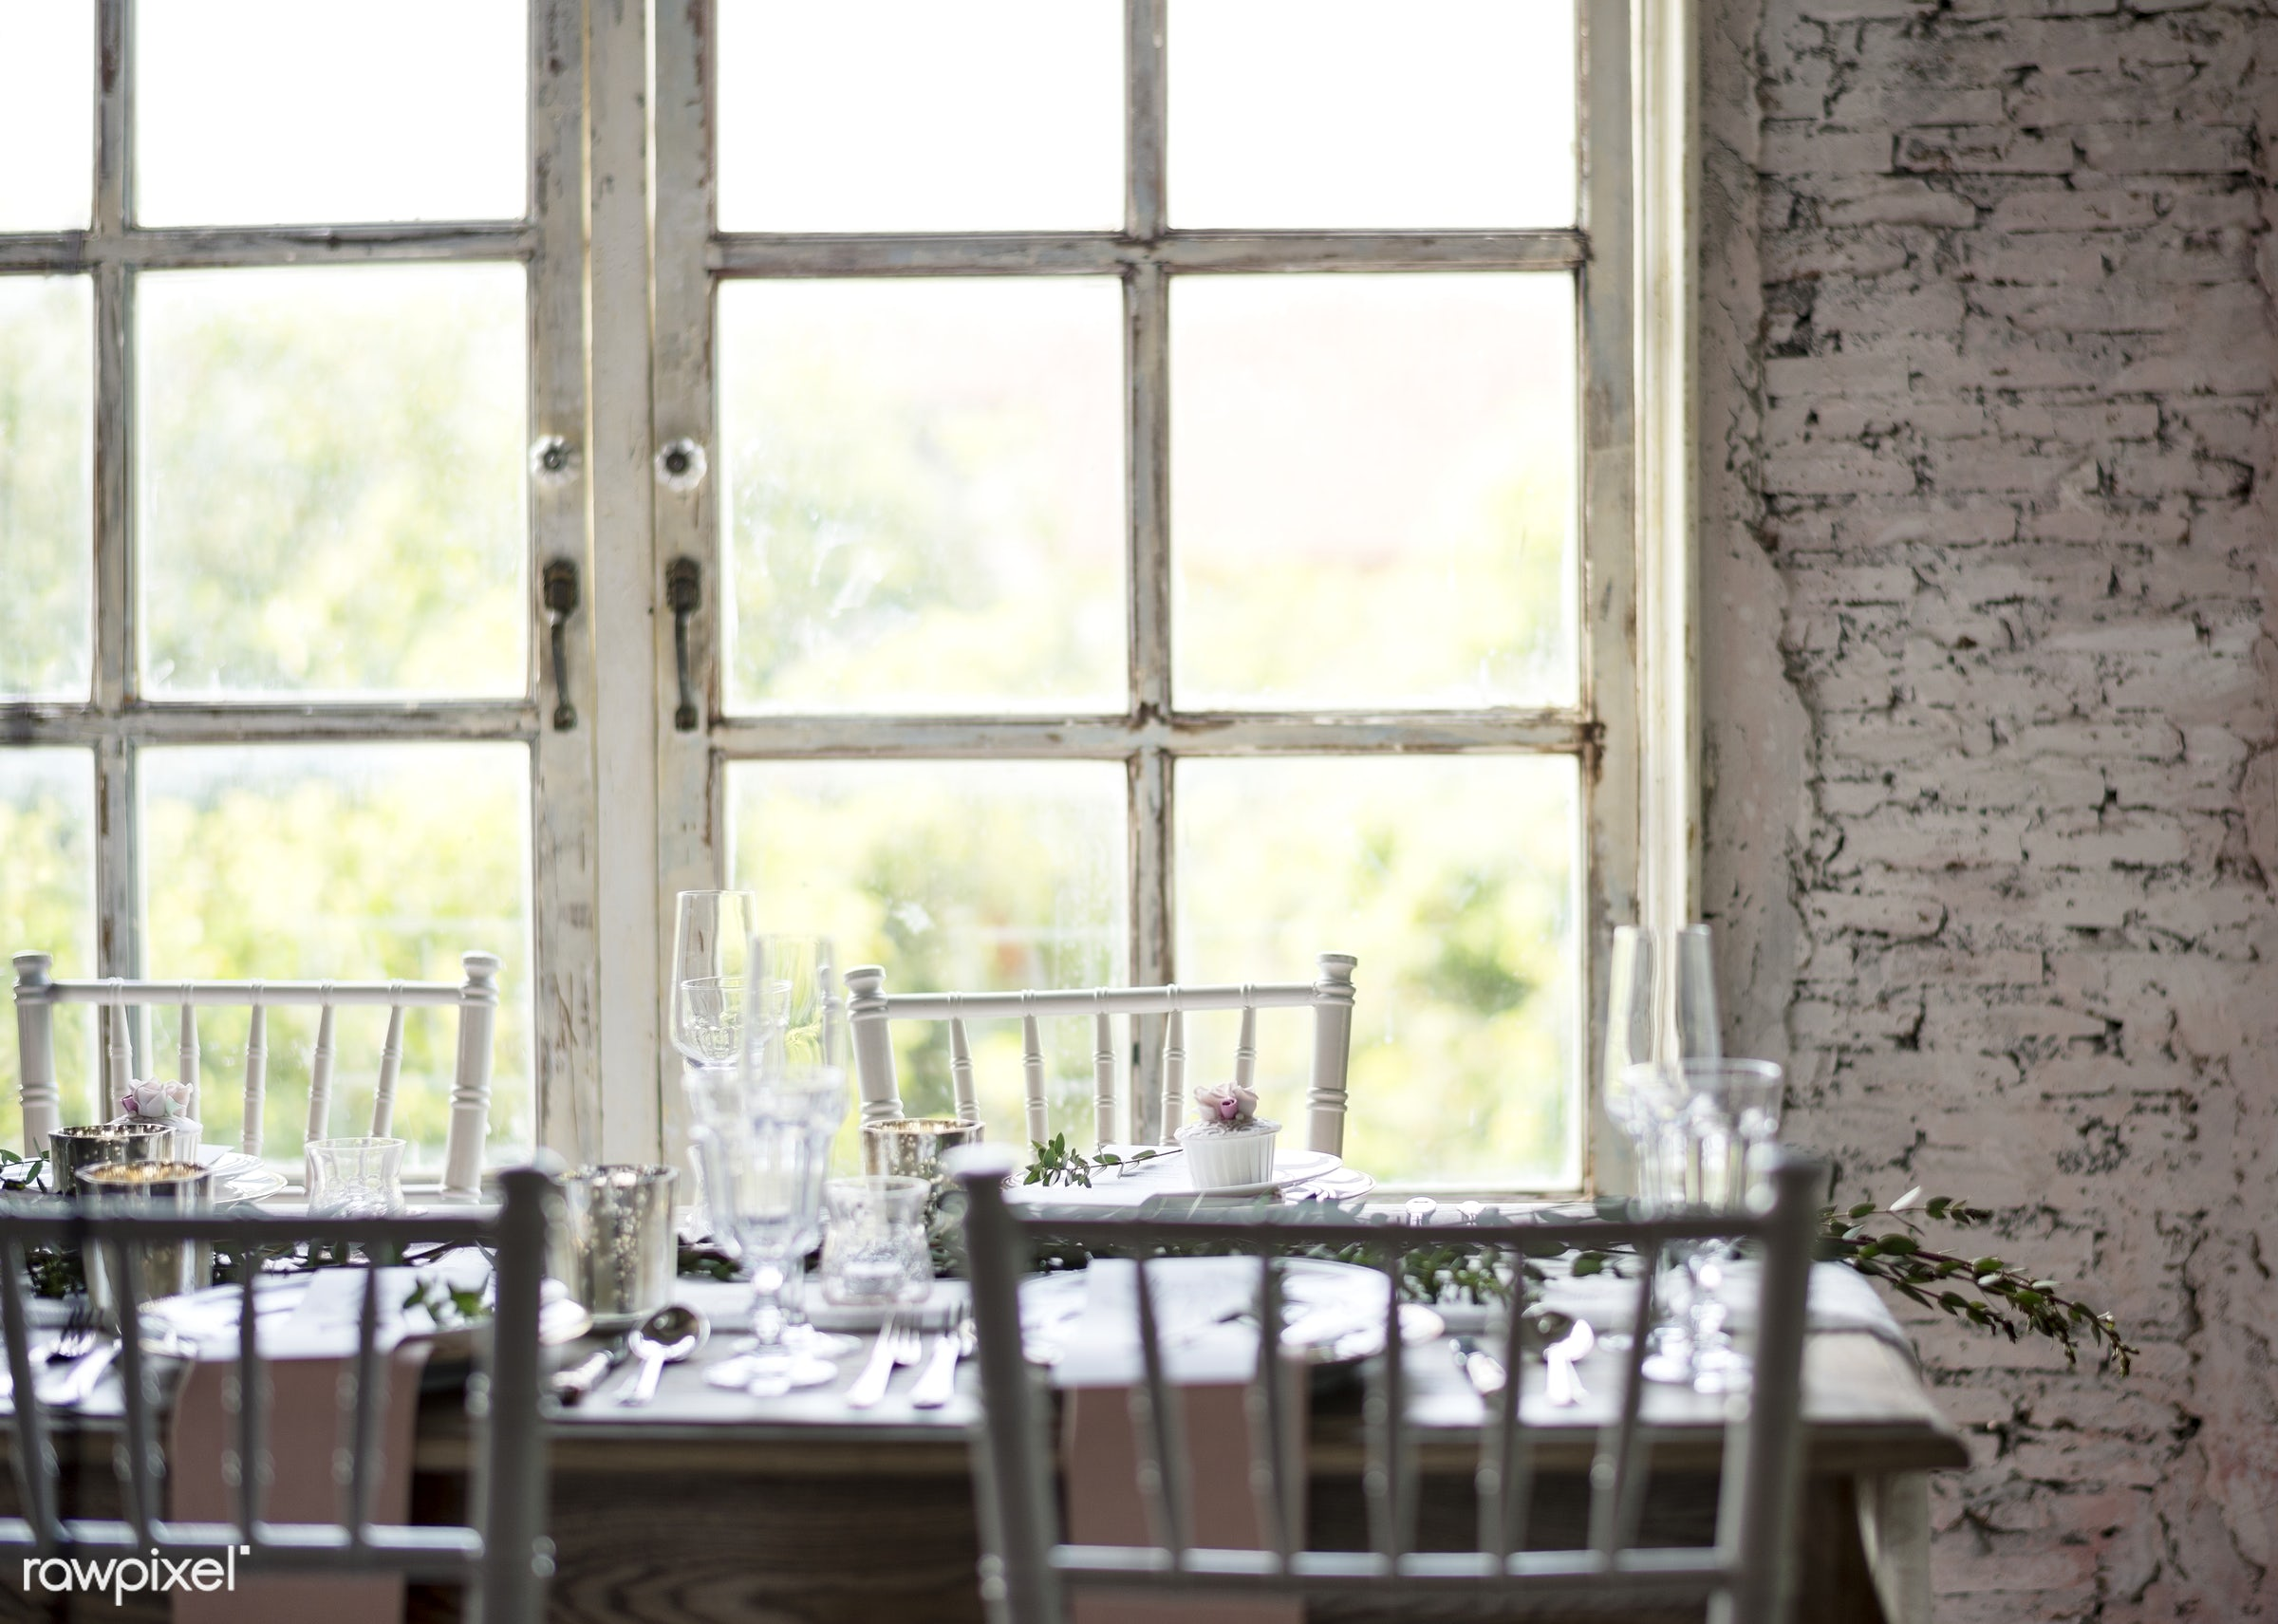 wedding, restaurant, party, arrangement, banquet, ceremony, cutlery, decoration, detail, dinner, dishes, food, meal, meeting...